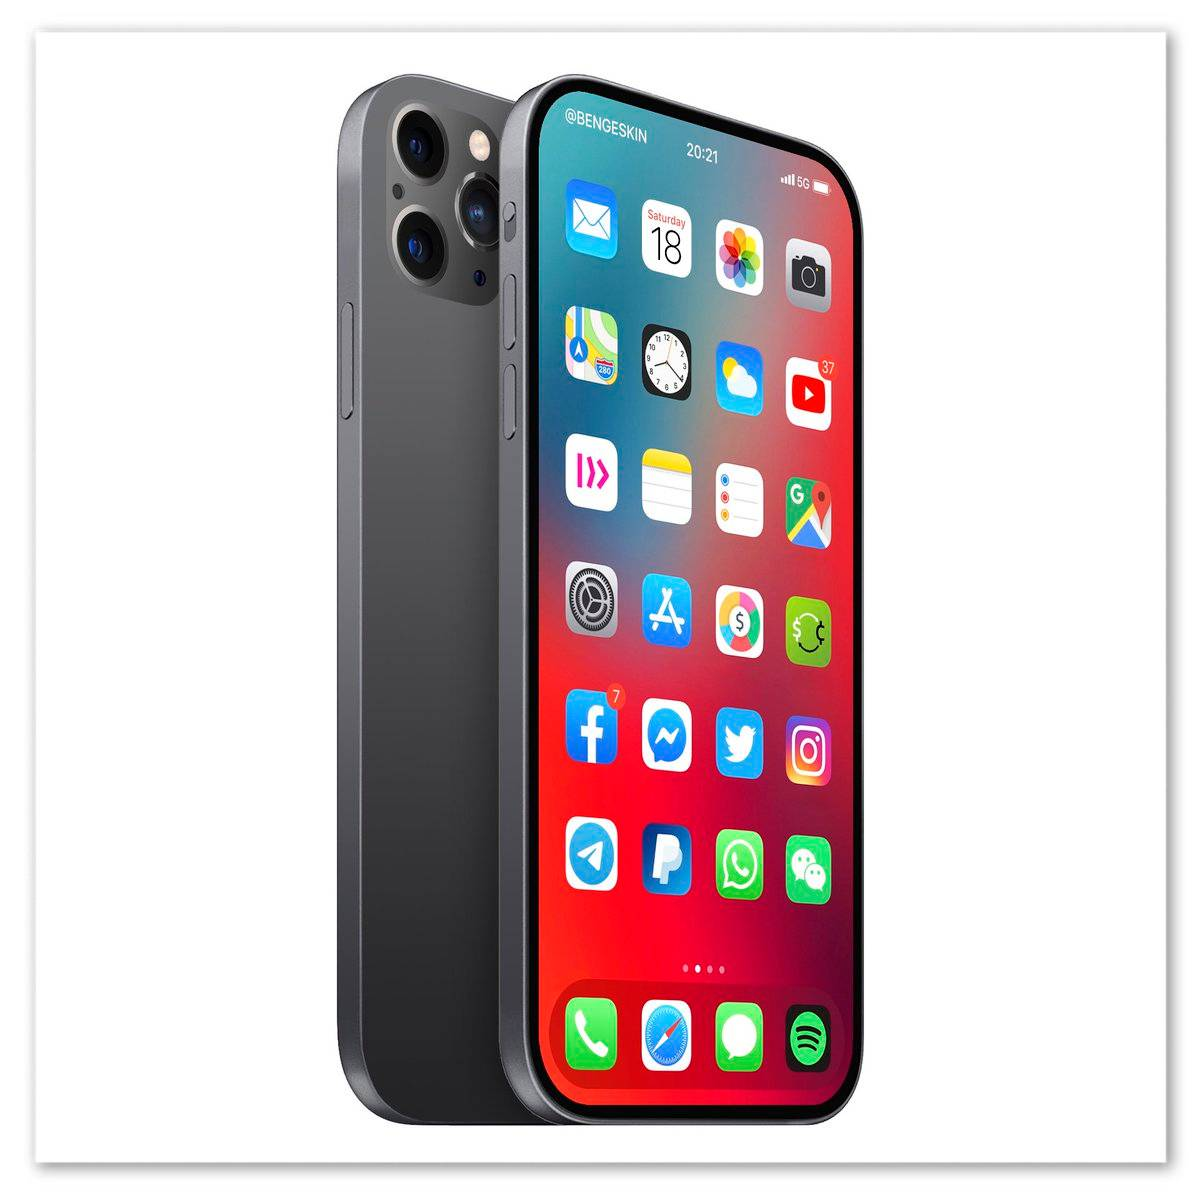 This may be the iPhone 13. Insiders are already discussing what may surprise their Apple fans in 2021